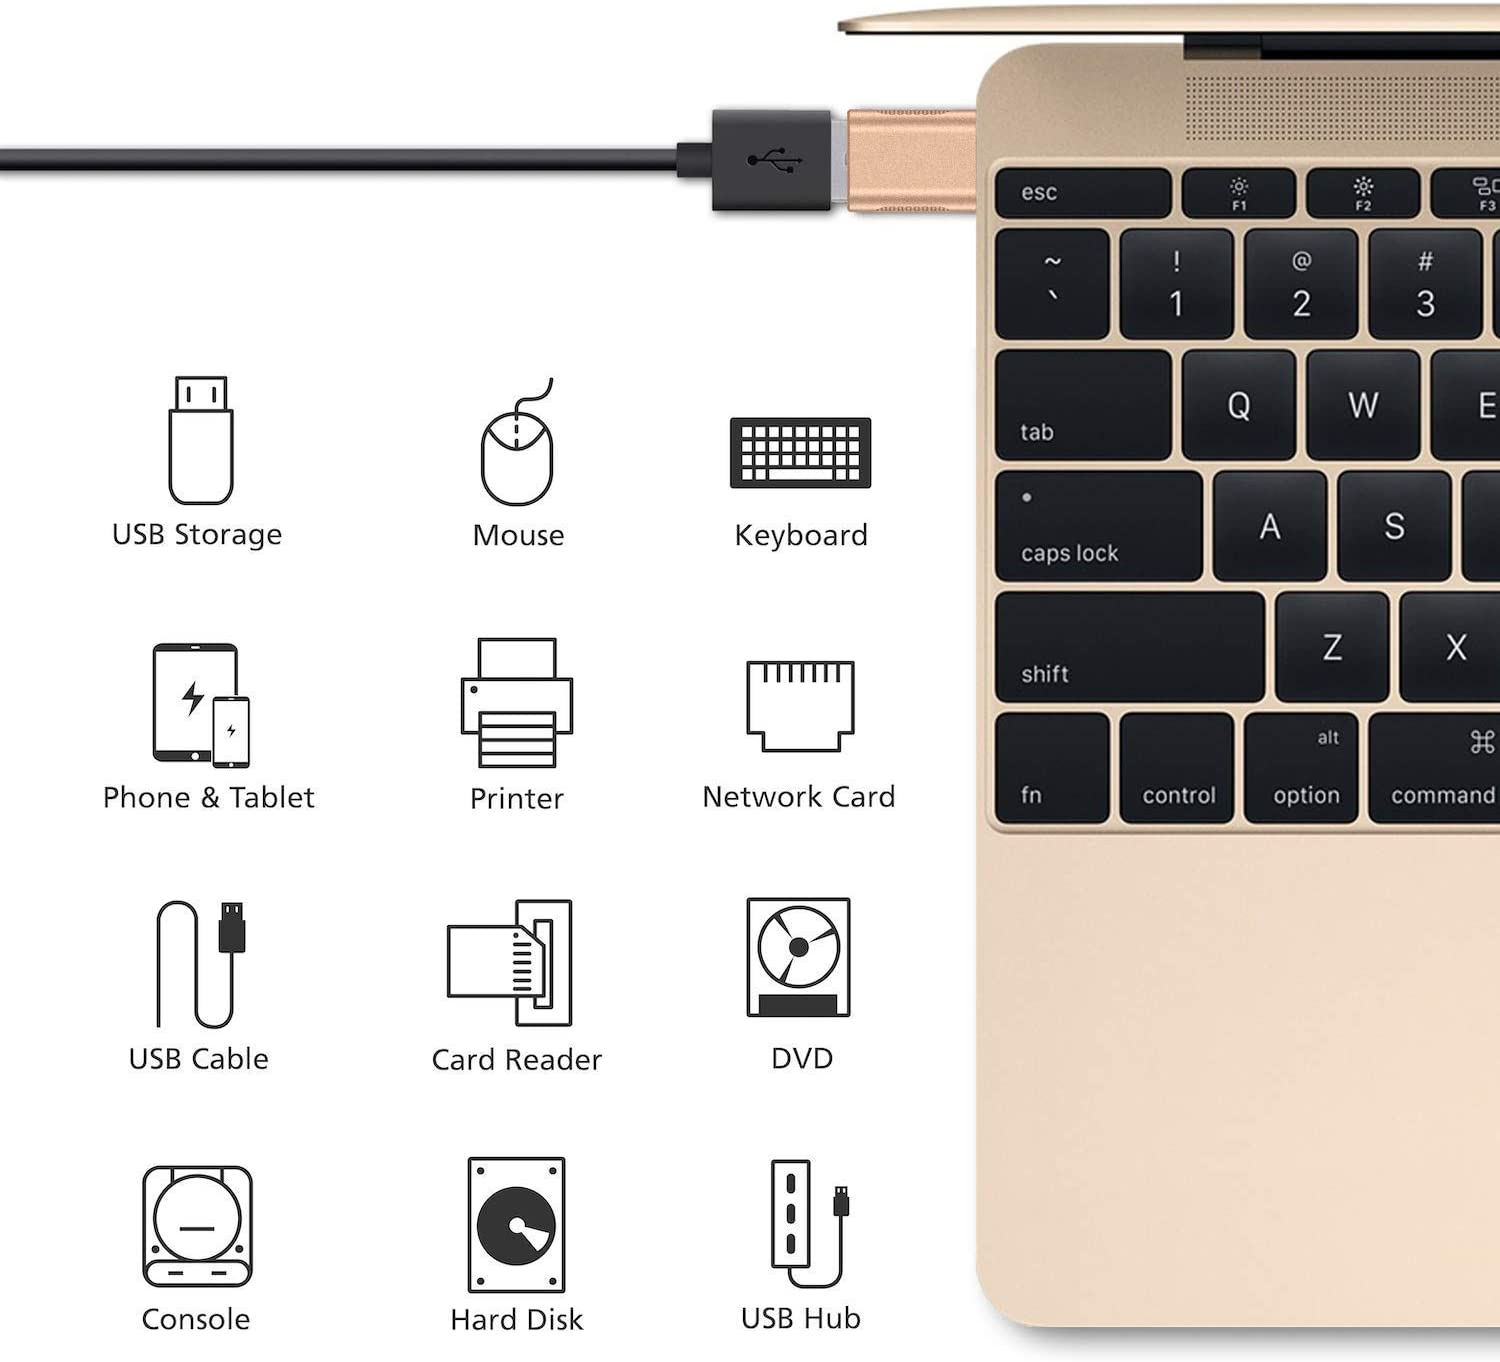 nonda USB C to USB Adapter Gold ,USB-C to USB 3.0 Adapter,USB Type-C to USB,Thunderbolt 3 to USB Female Adapter OTG for MacBook Pro 2019//2018,MacBook Air 2018,and More Type-C Devices 2 Pack